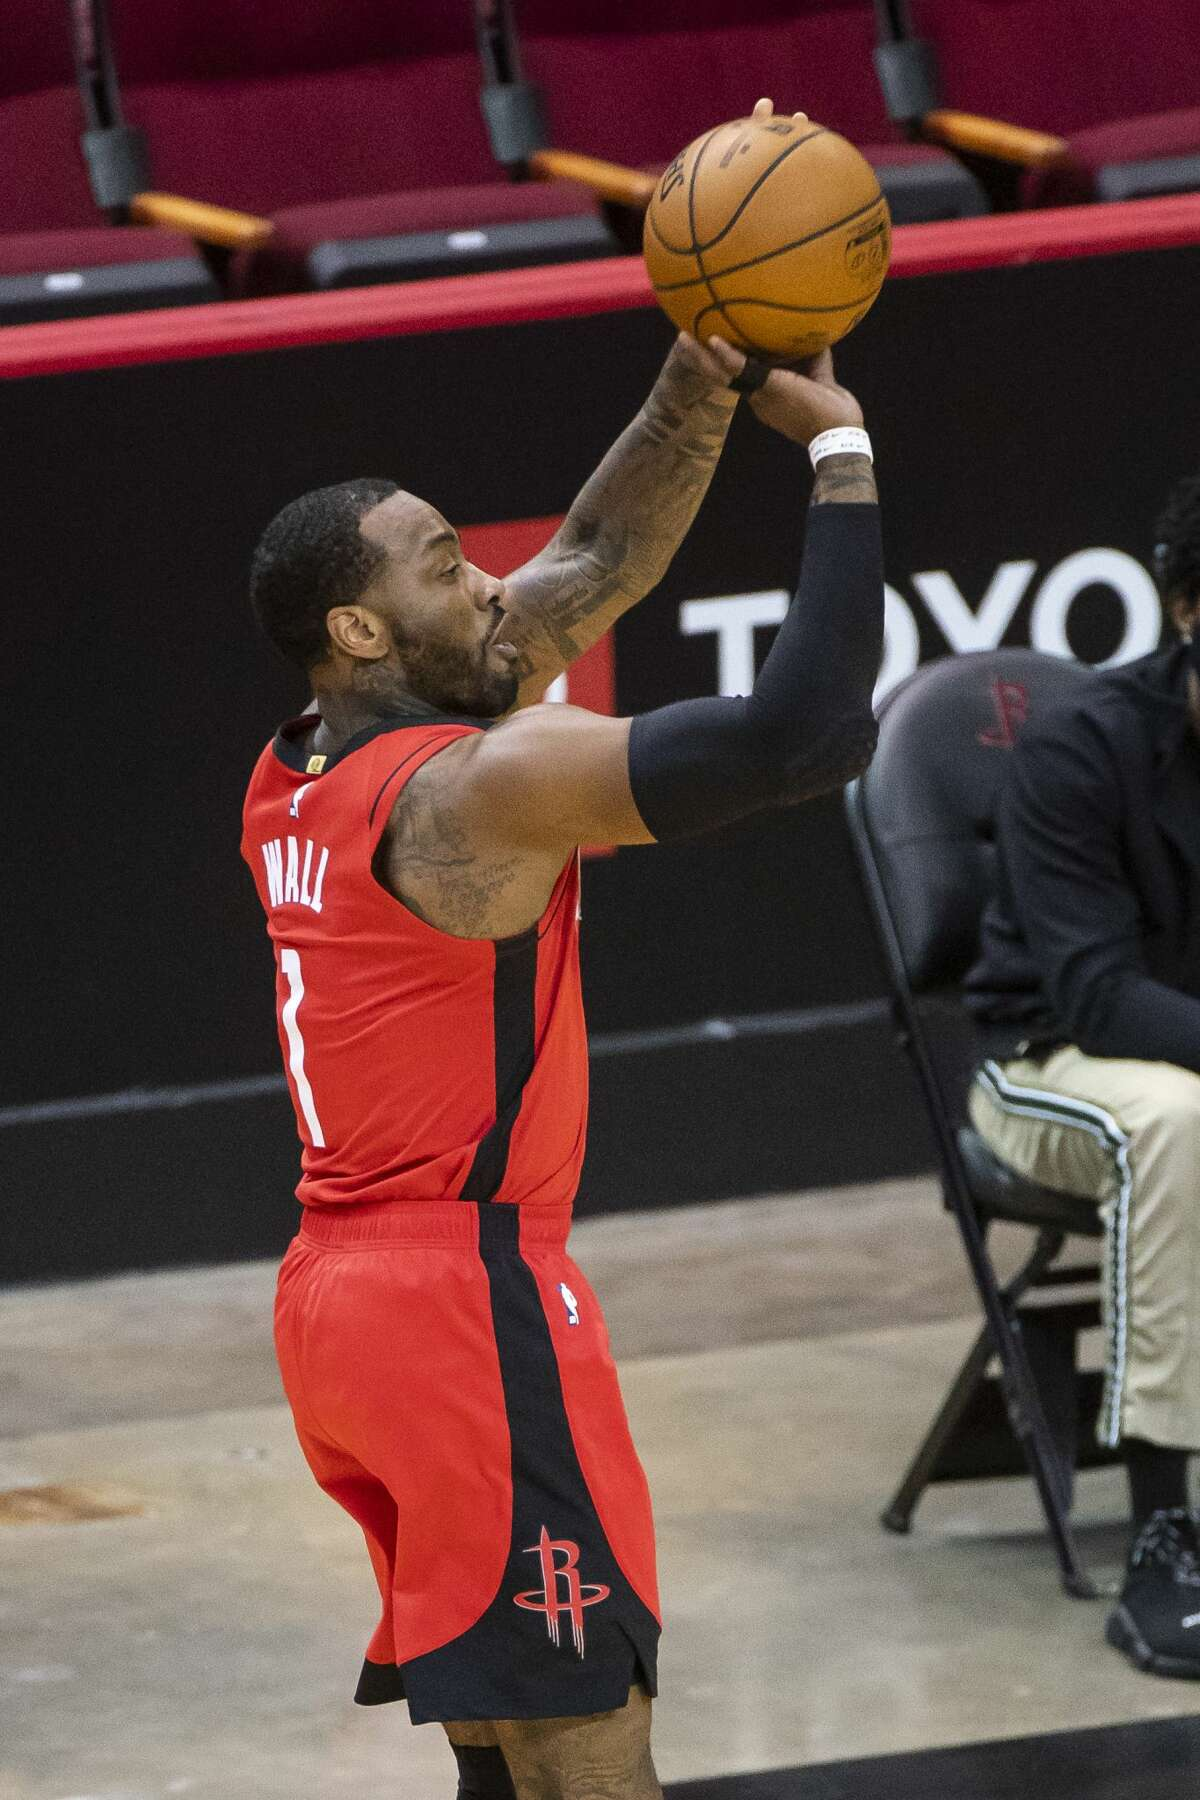 Houston Rockets guard John Wall (1) hits a three point shot during the first quarter of an NBA game between the Houston Rockets and Sacramento Kings on Saturday, Jan. 2, 2021, at Toyota Center in Houston.